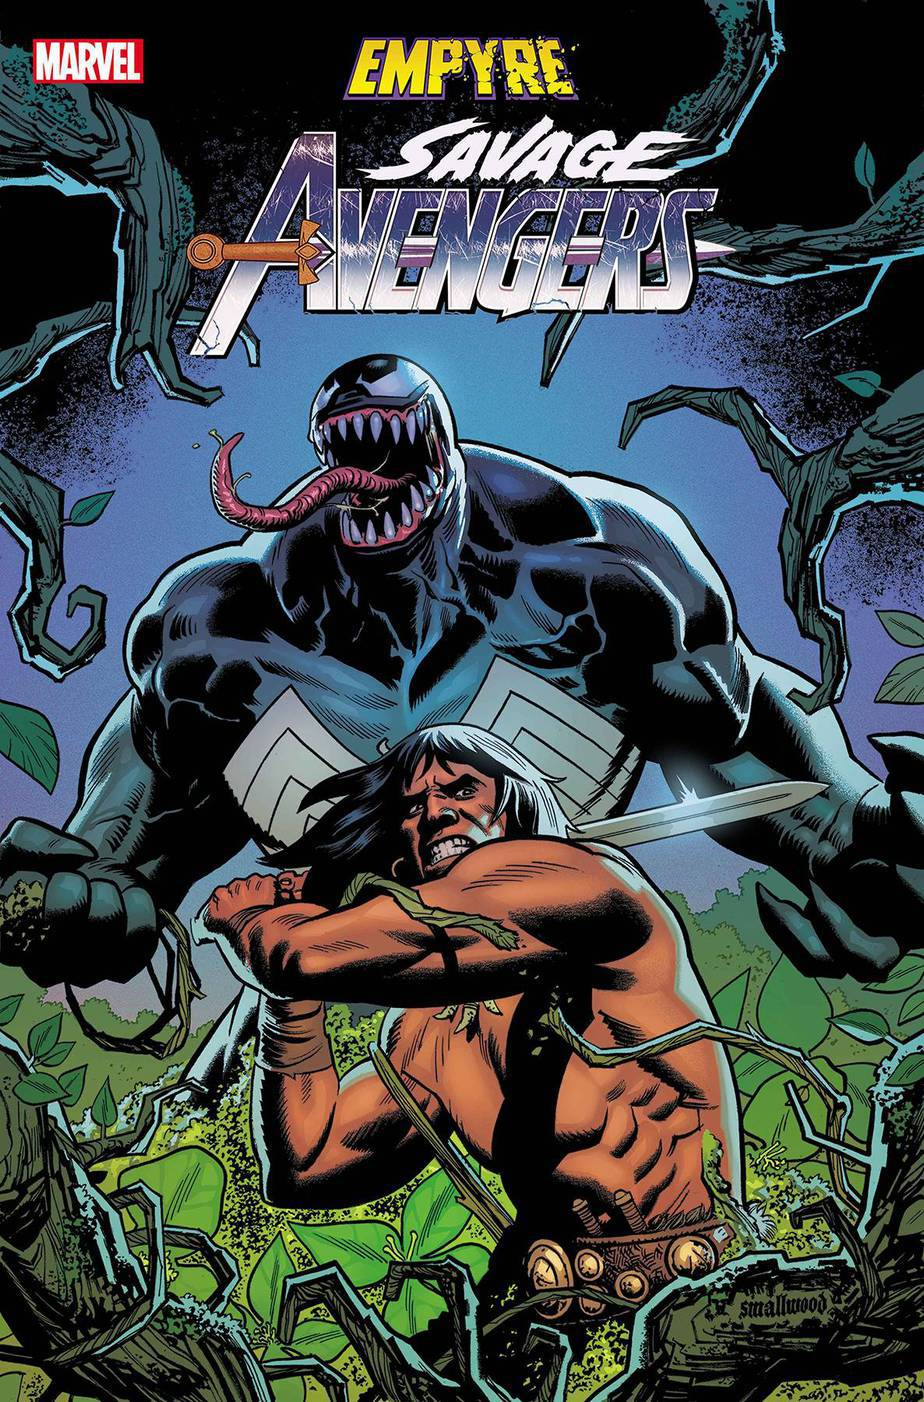 EMPYRE: Savage Avengers #1 - Cover A